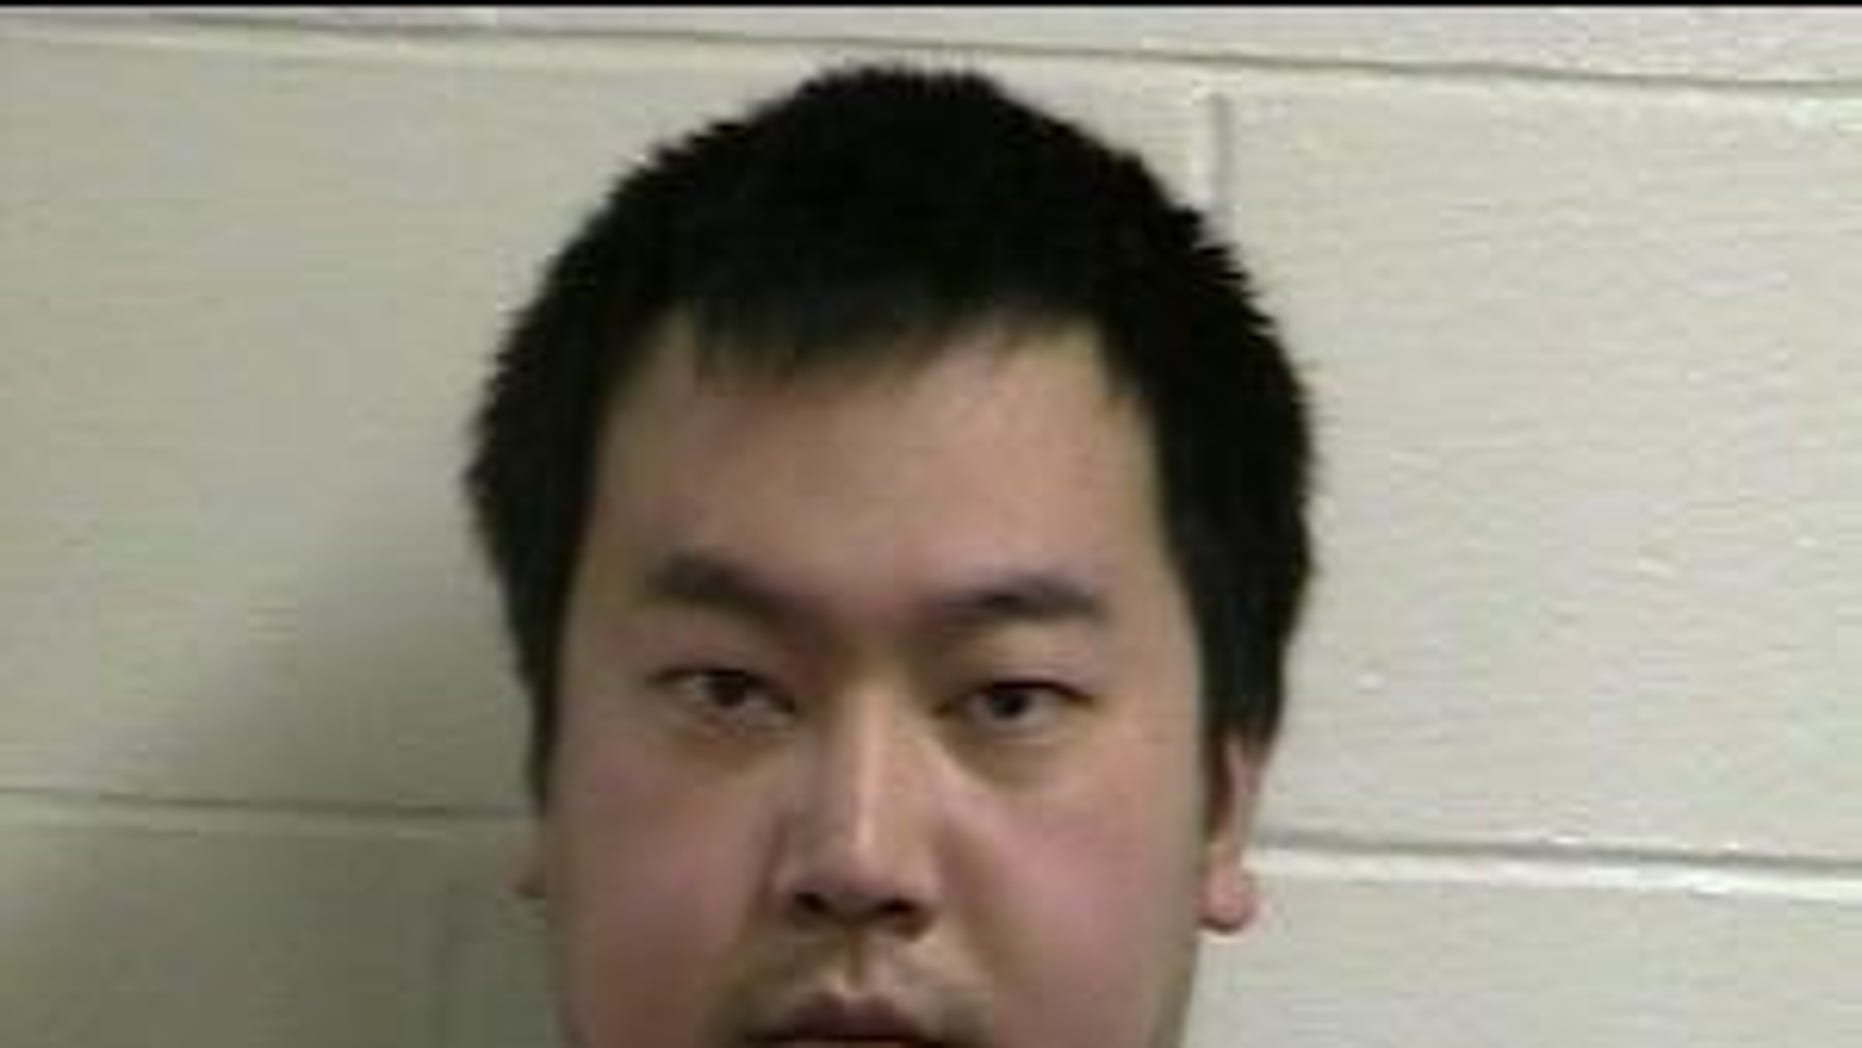 Jeffrey Yao allegedly stabbed a woman to death at a public library in Massachusetts on Saturday.